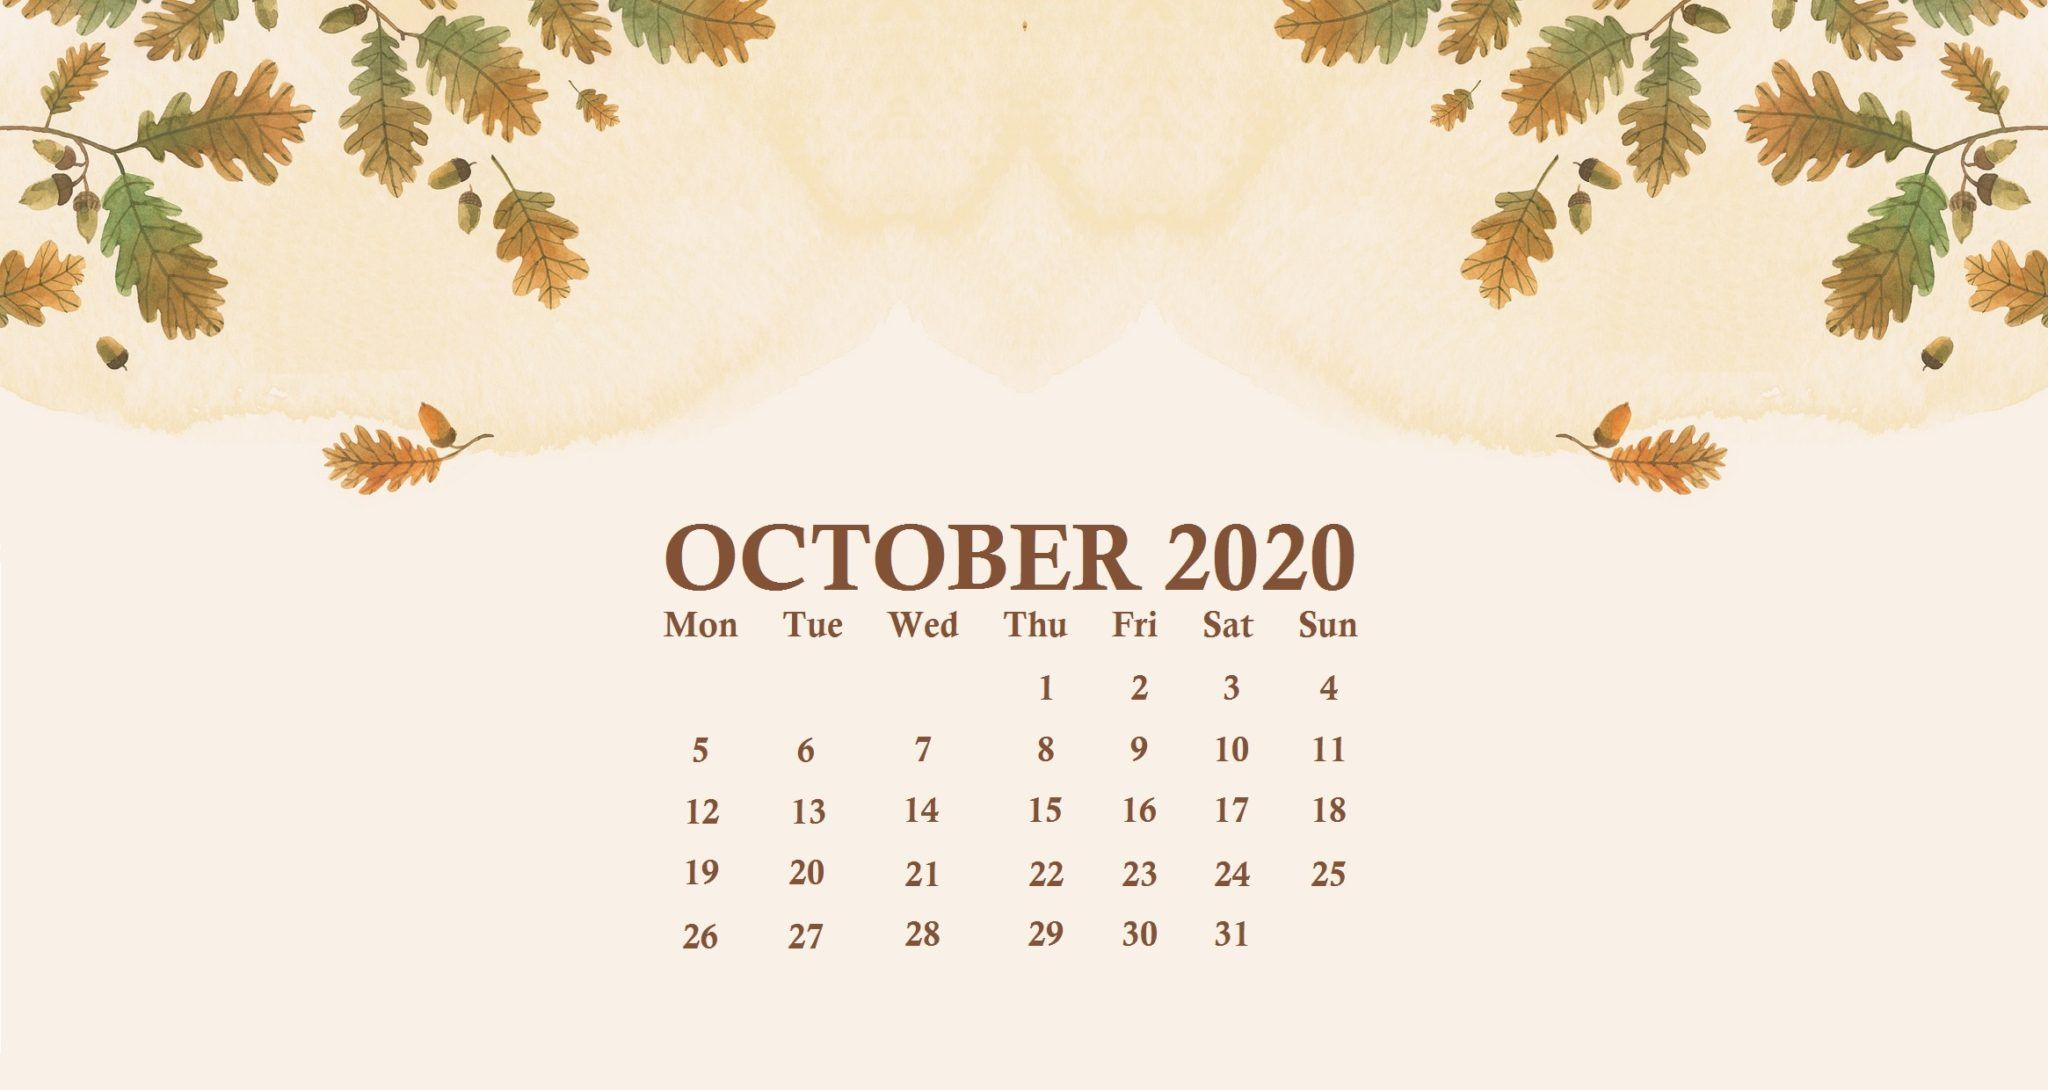 october wallpaper 2020